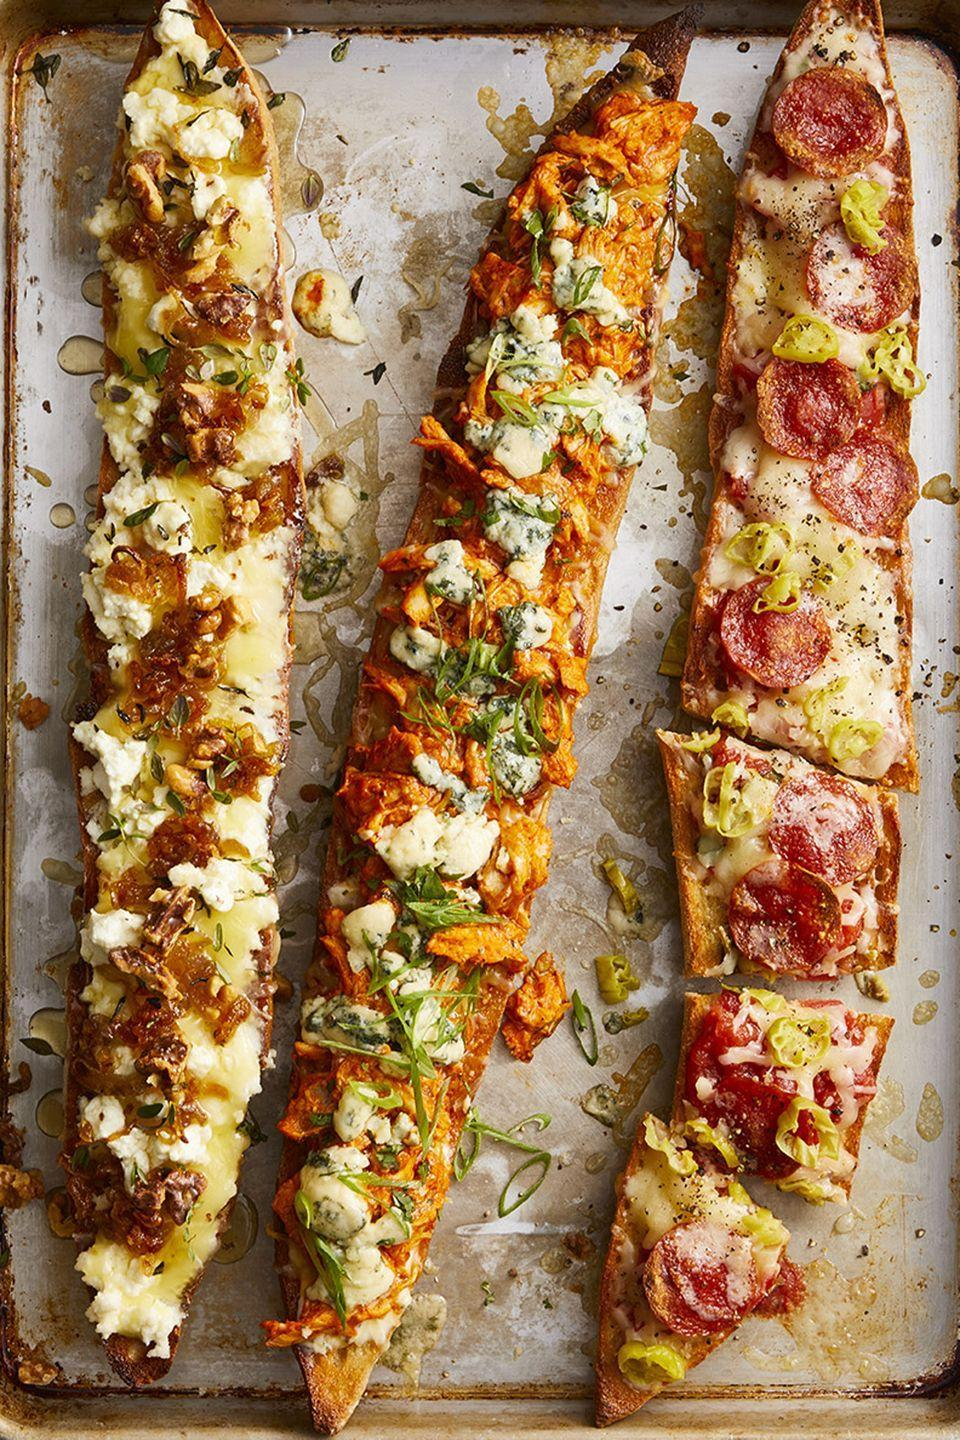 "<p>It's your call: Choose one pizza topping or try them all (we suggest you try them all!). </p><p><a href=""https://www.goodhousekeeping.com/food-recipes/easy/a47670/baguette-pizza-recipe/"" rel=""nofollow noopener"" target=""_blank"" data-ylk=""slk:Get the recipe for Baguette Pizzas »"" class=""link rapid-noclick-resp""><em>Get the recipe for Baguette Pizzas »</em></a></p>"